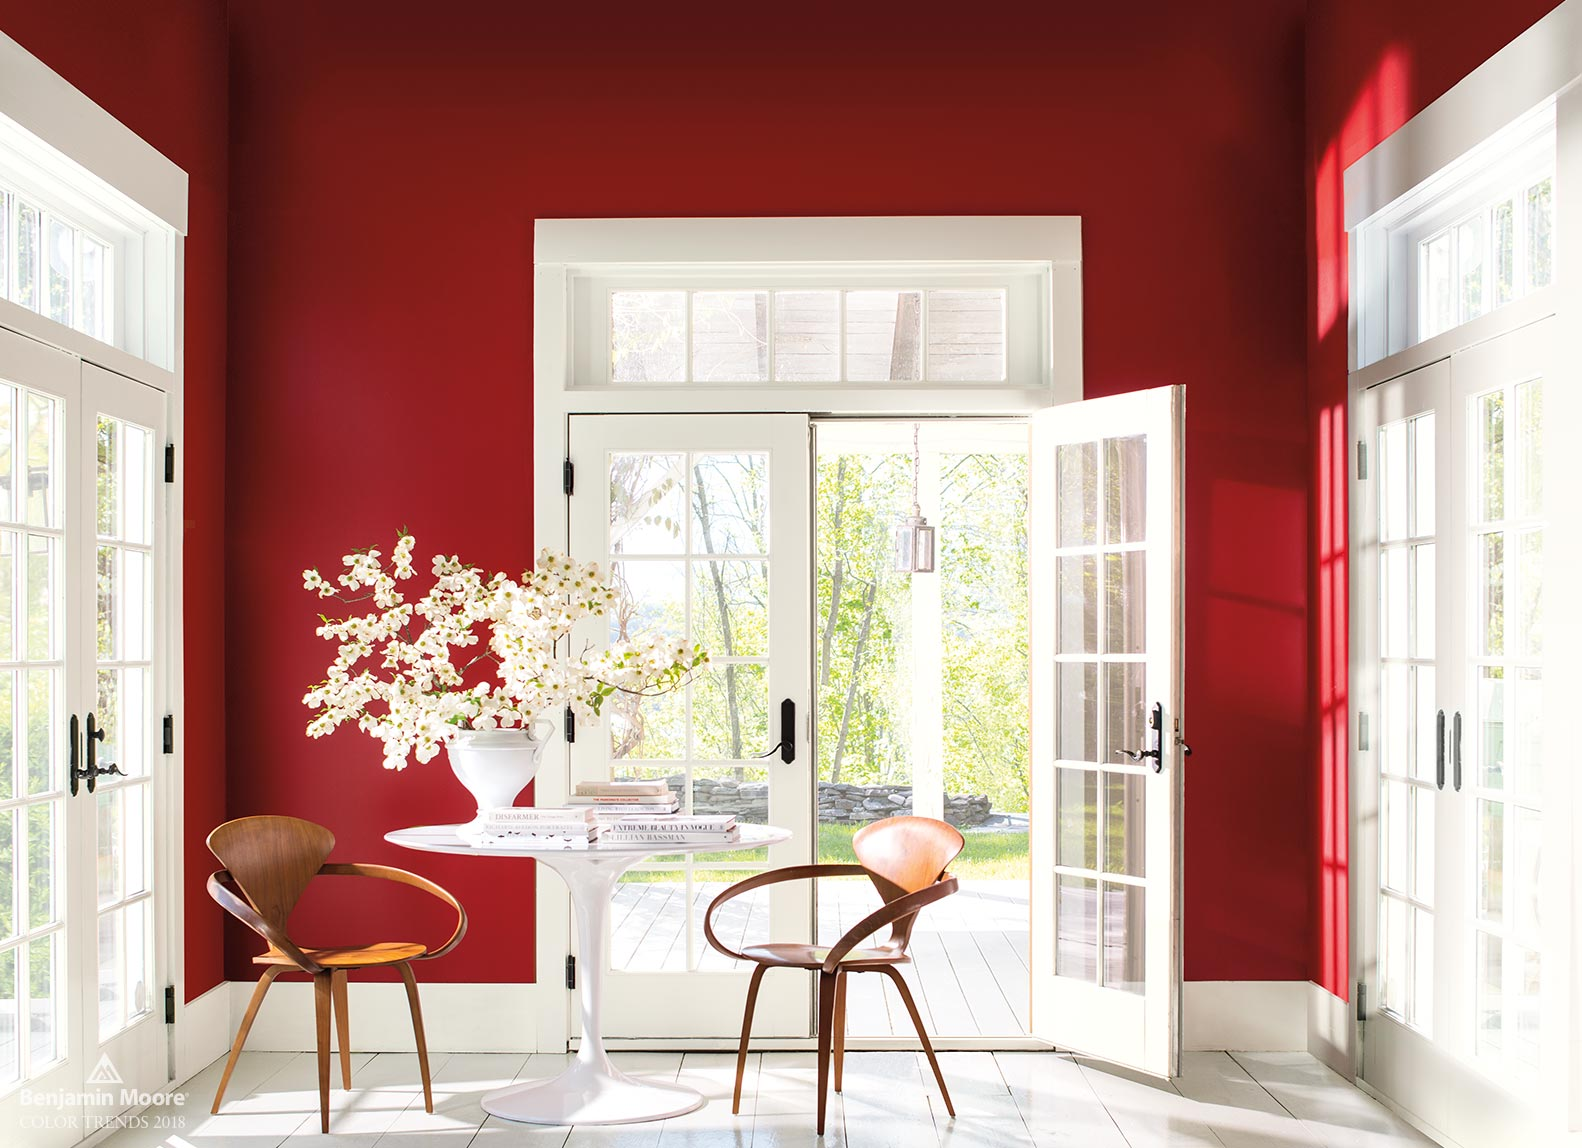 Benjamin Moore Colour of the Year 2018 | Colour Trends 2018